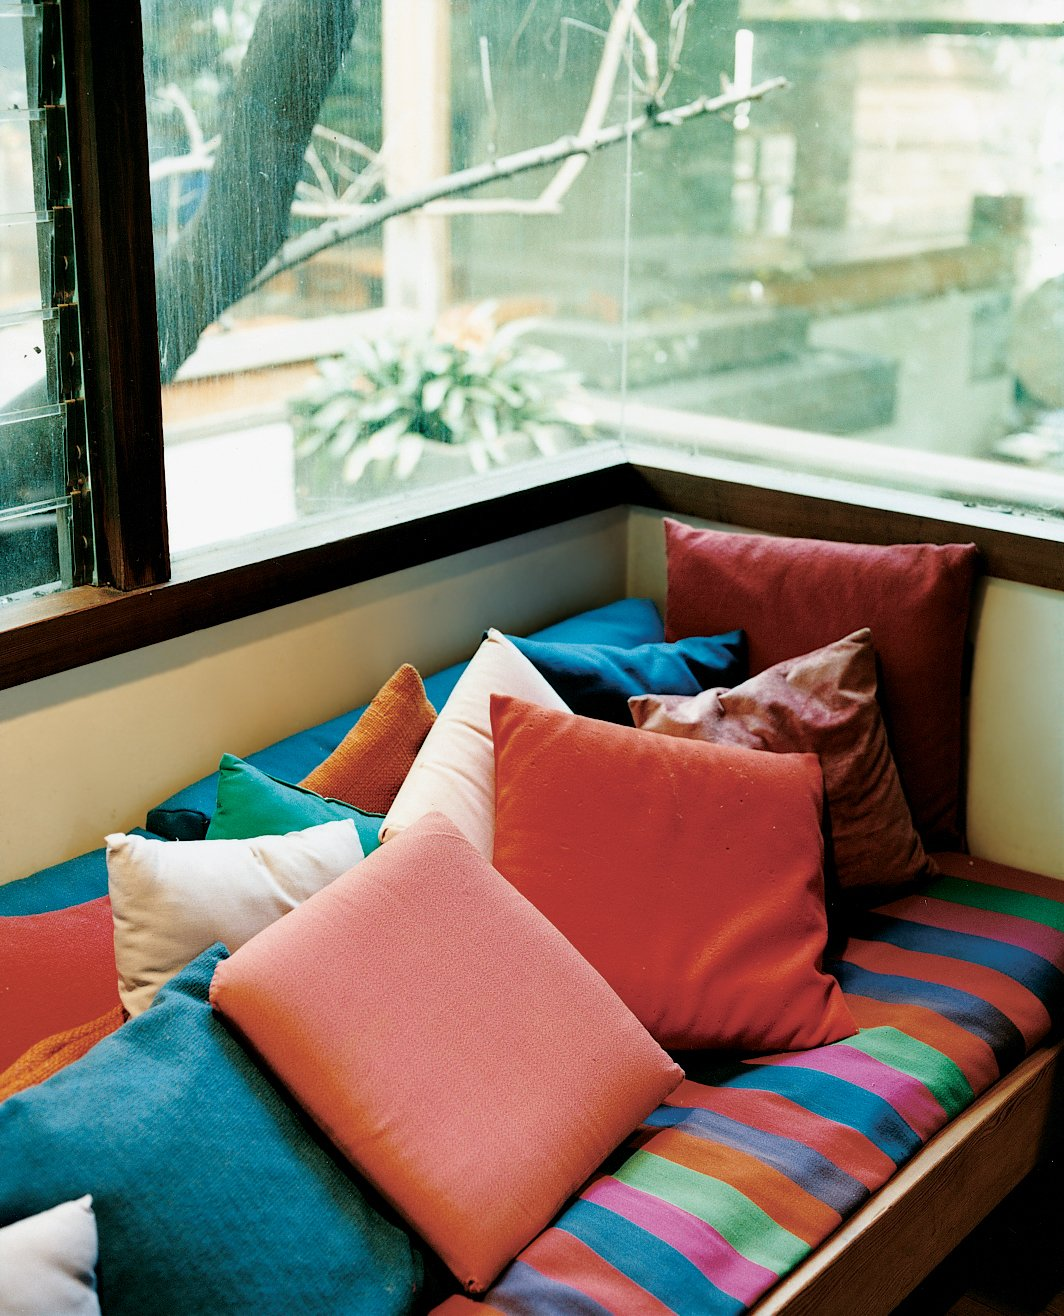 The exposed wood and raw concrete throughout the house are offset by bold colors, chosen by Shelly and the children. The house's warm hues can clearly be seen in this window seat in Ray's office. Ray Kappe-Designed Multilevel House in Los Angeles - Photo 6 of 12